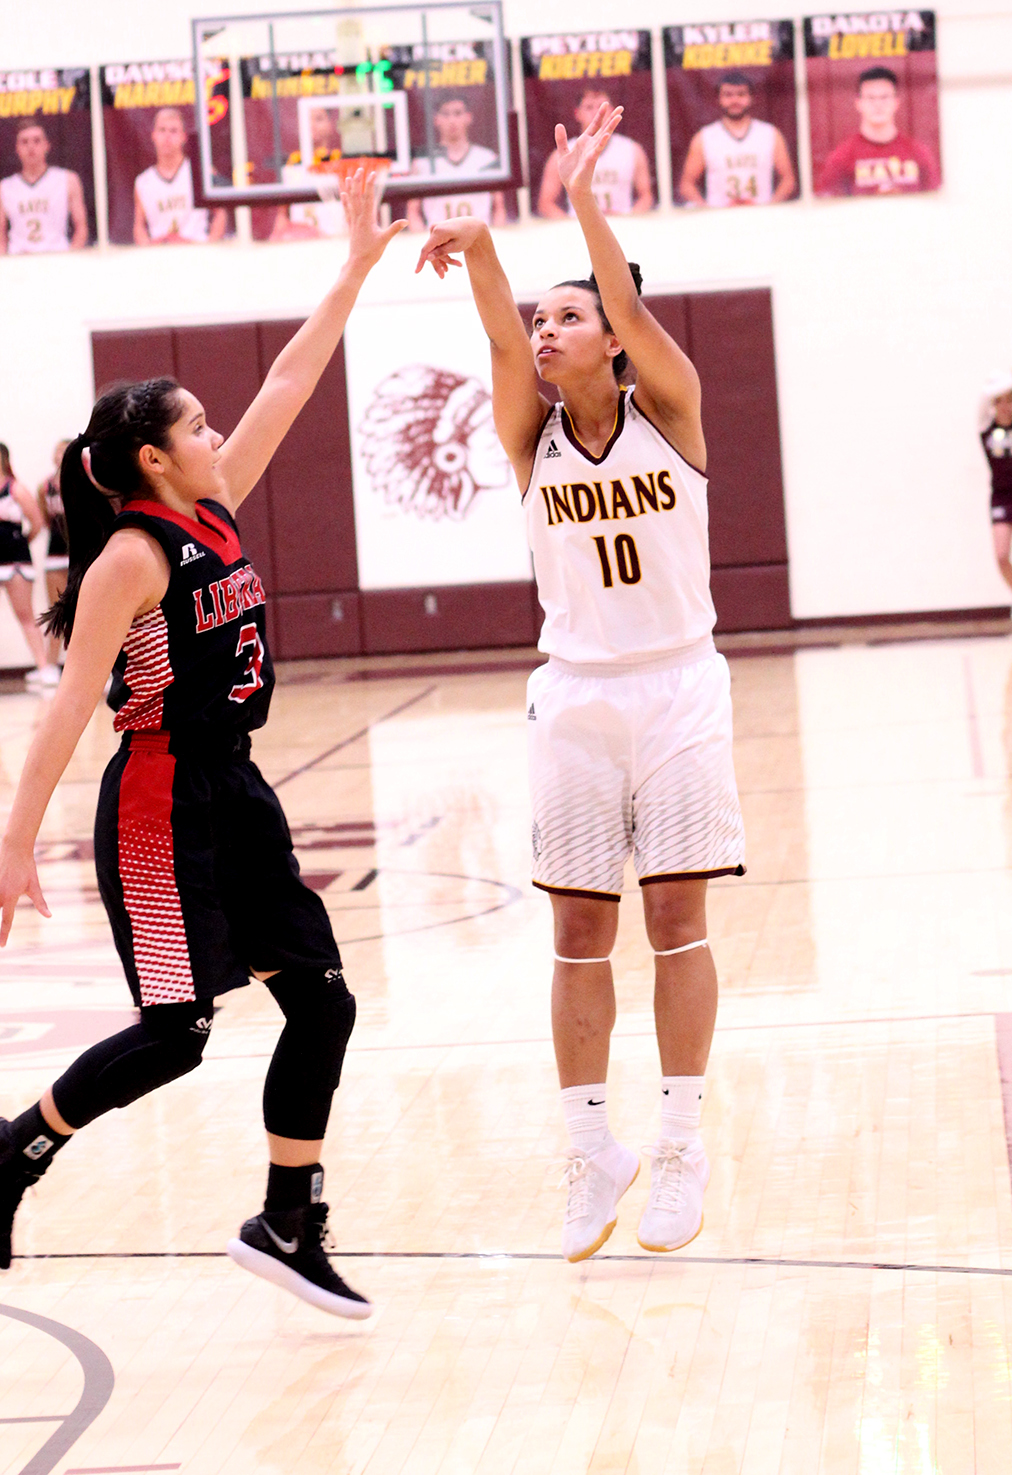 Sophomore Tasiah Nunnery pulls up for a shot in a recent game against the Liberal Redskins.